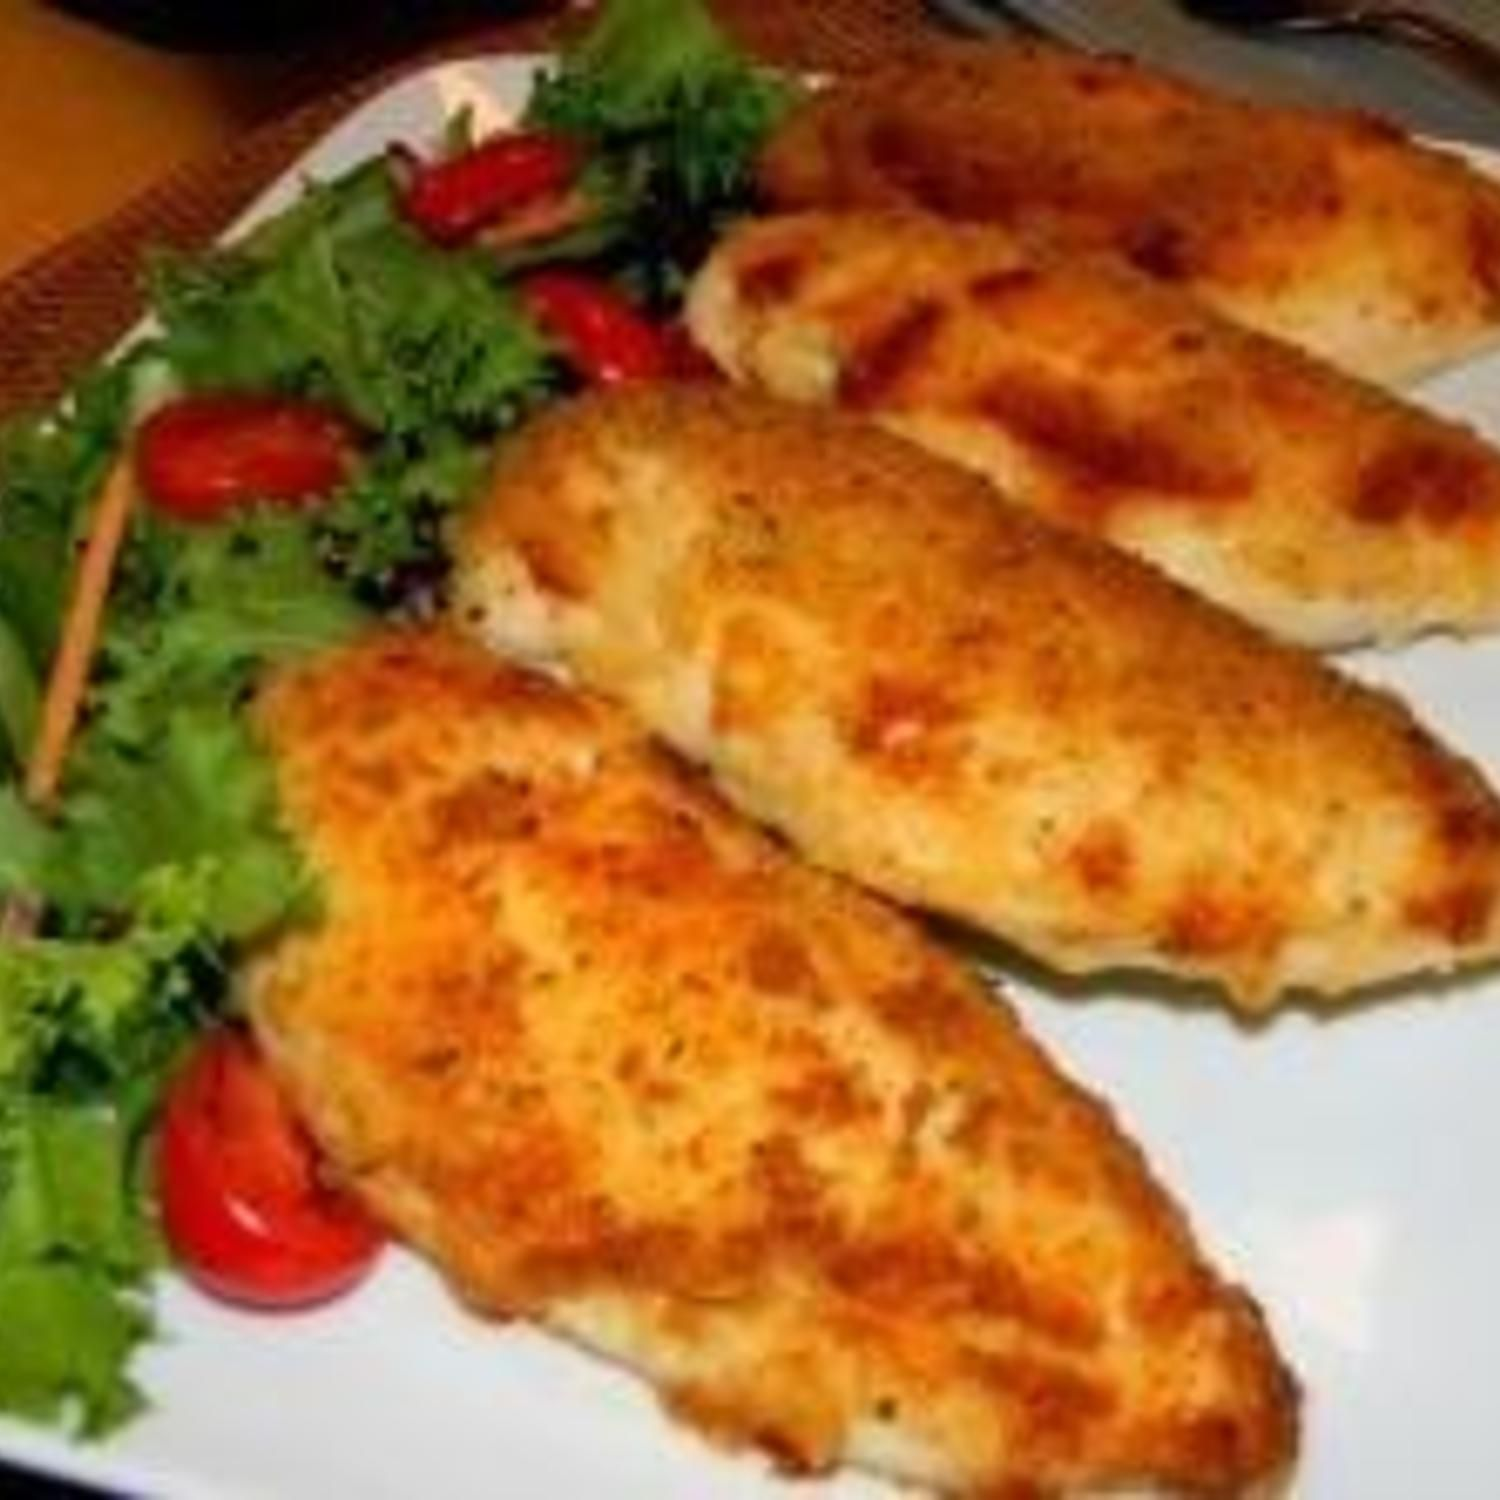 For some really tender, deliciously juicy chicken, this recipe is a must try.